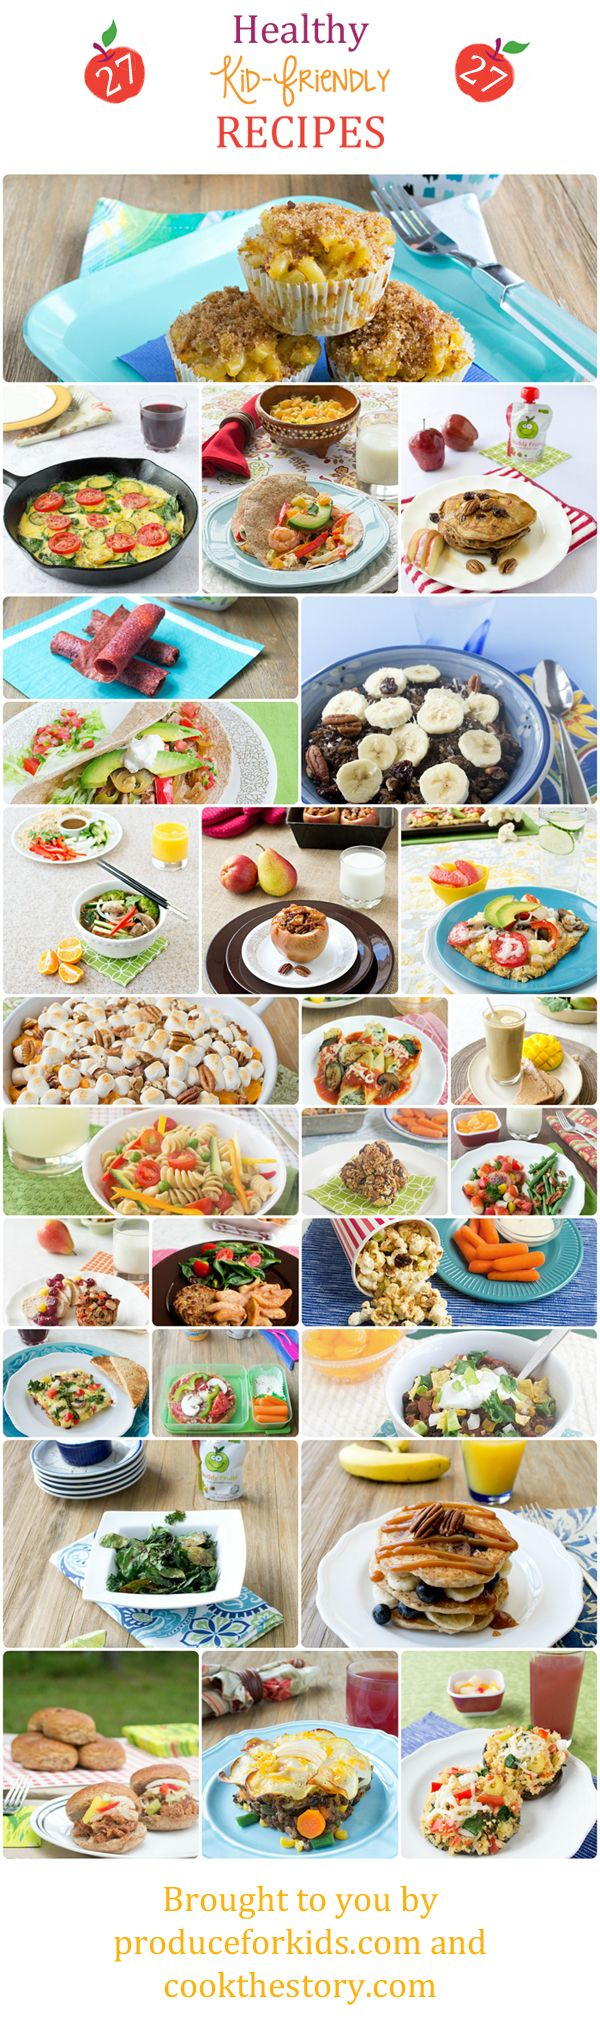 27 Healthy Recipes for Kids: Breakfasts, Lunches, Dinners and Snacks #healthy #kids #parenting